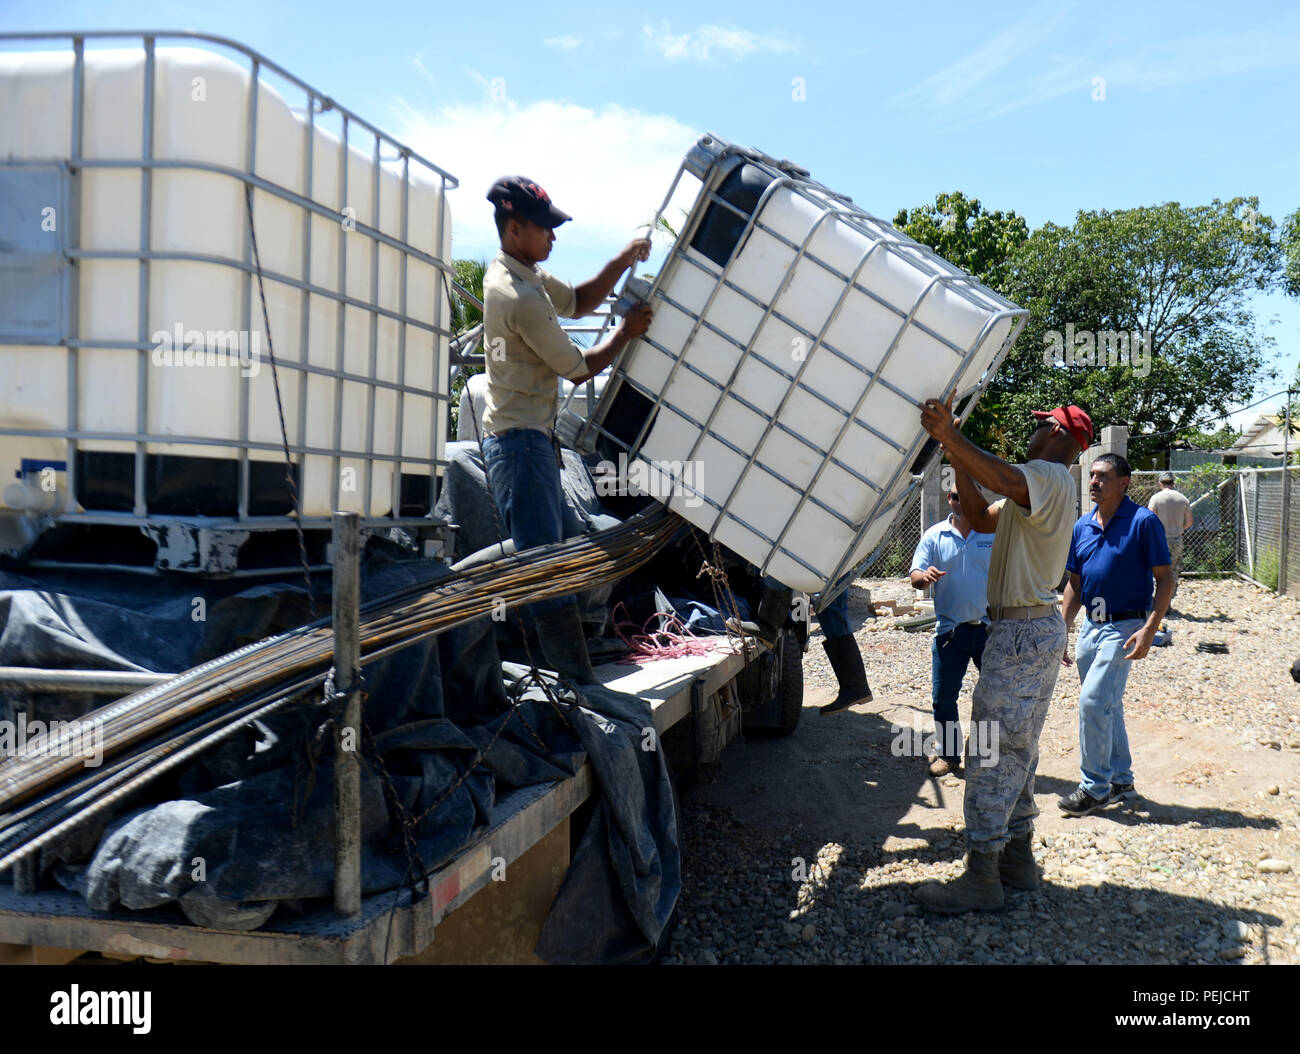 U.S. Air Force Tech. Sgt. Elton Vance, 823rd Expeditionary RED HORSE Squadron well-drilling craftsman, out of Hurlburt Field, Fla., helps unload one of two 250-gallon tanks at the well site in Honduras Aguan, Honduras, Aug. 27, 2015. The tanks were donated to both this well site and the well site in Brisas del Mar, Honduras, in order to give resident a temporary storage location for their water. Both wells were drilled as part of the New Horizons Honduras 2015 training exercise. New Horizons was launched in the 1980s and is an annual joint humanitarian assistance exercise that U.S. Southern Co - Stock Image